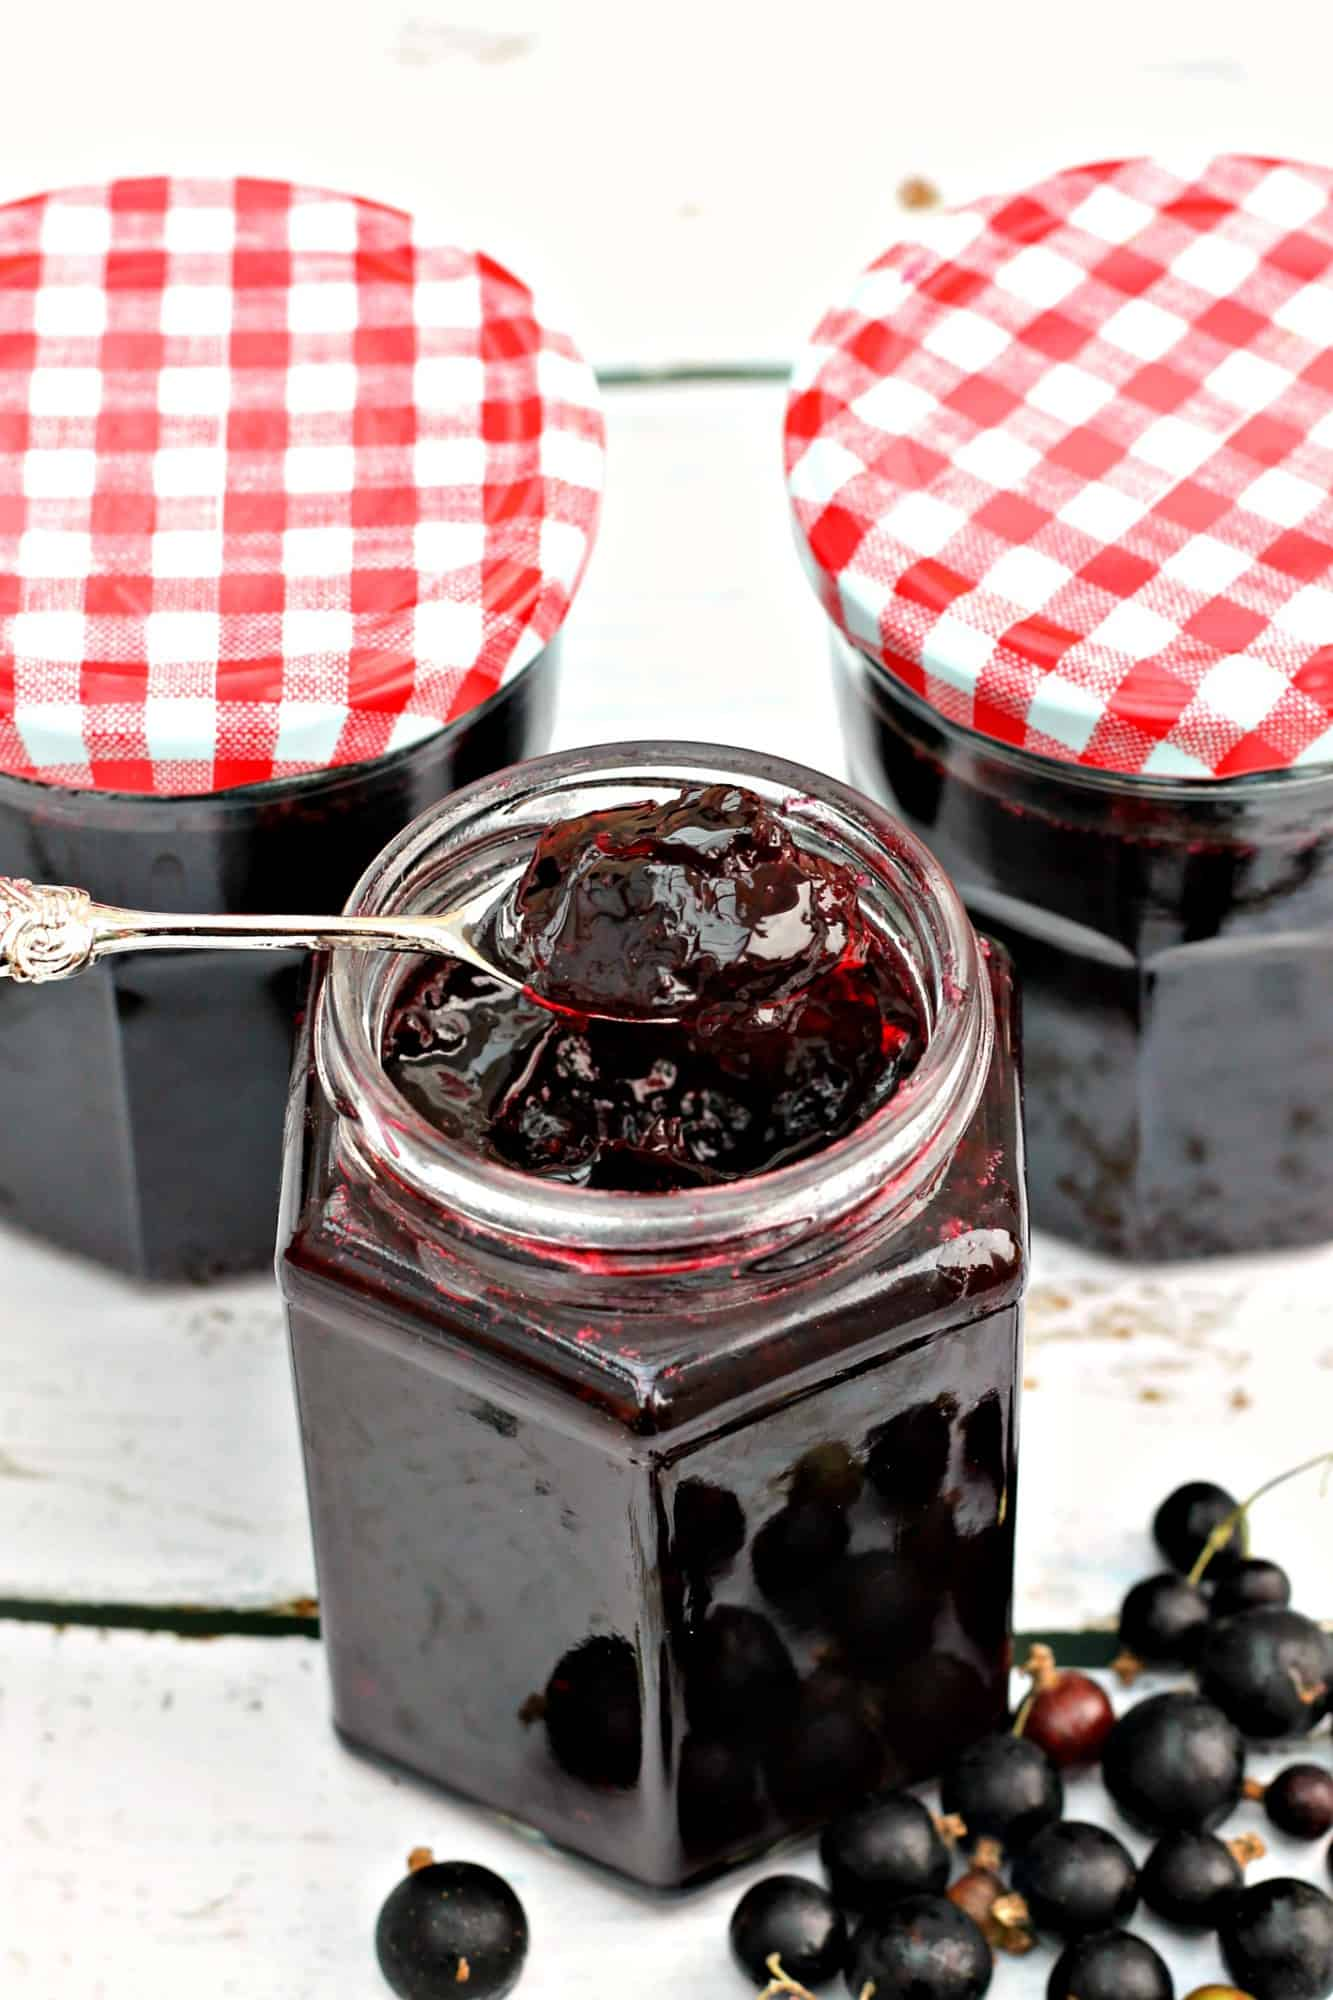 Jar of jam with a spoon of jam above, showing the perfect set.